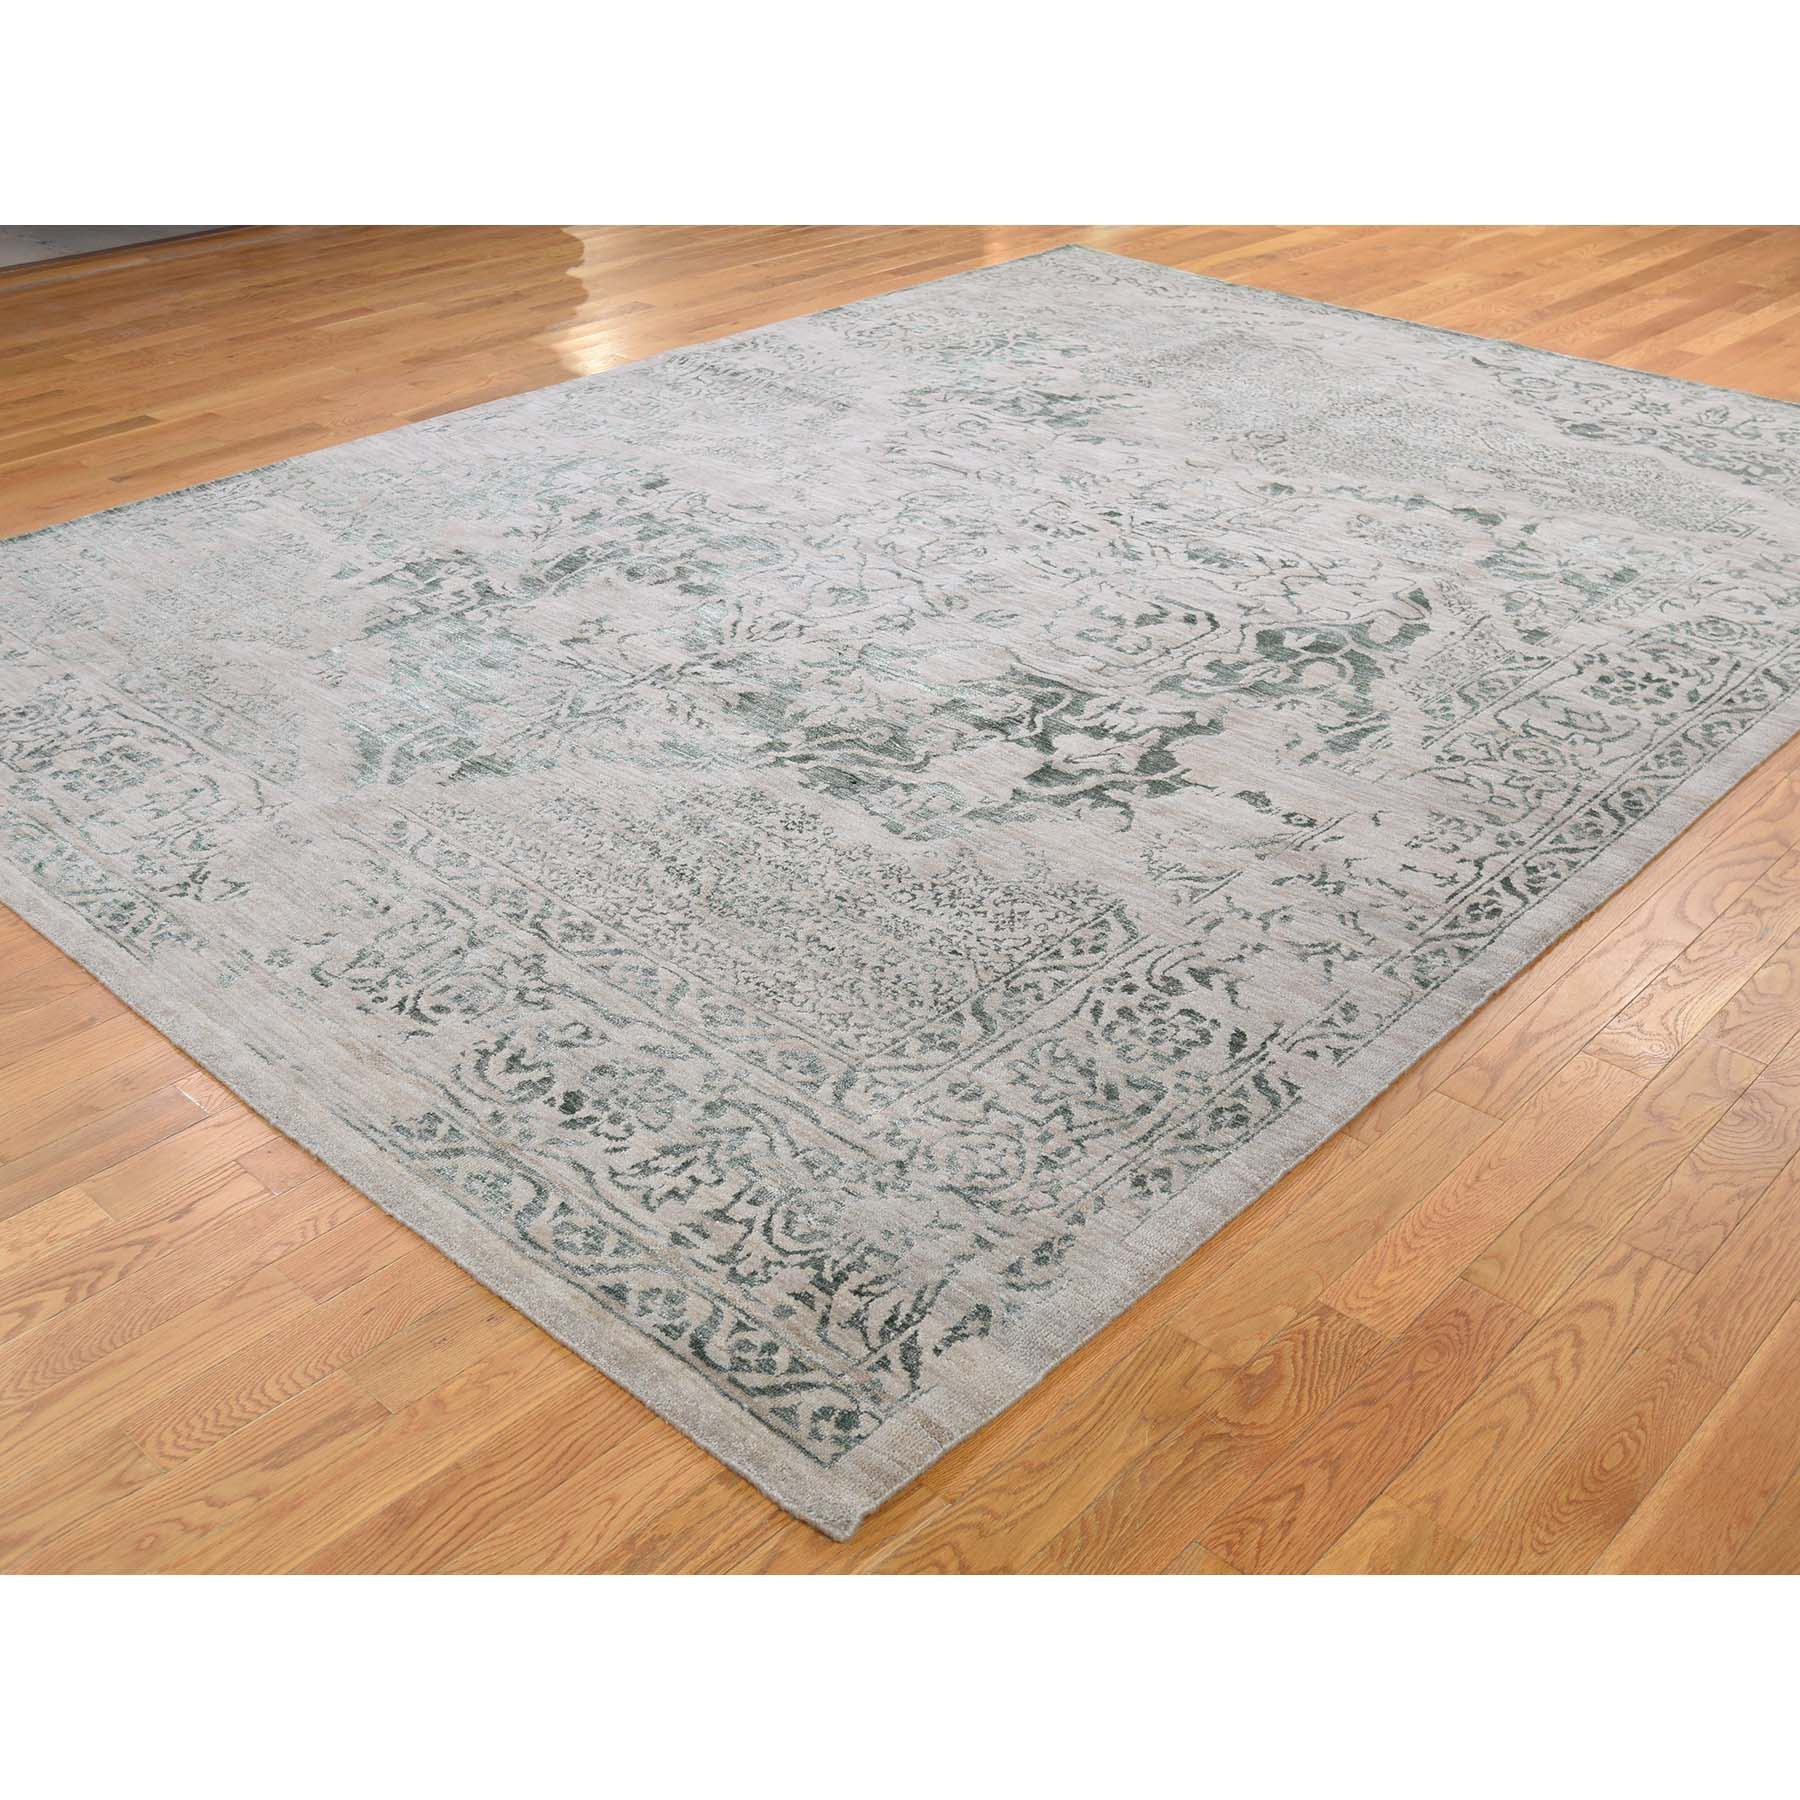 8-10 x12- Hand-Knotted Wool and Silk Broken Heriz Design Oriental Rug